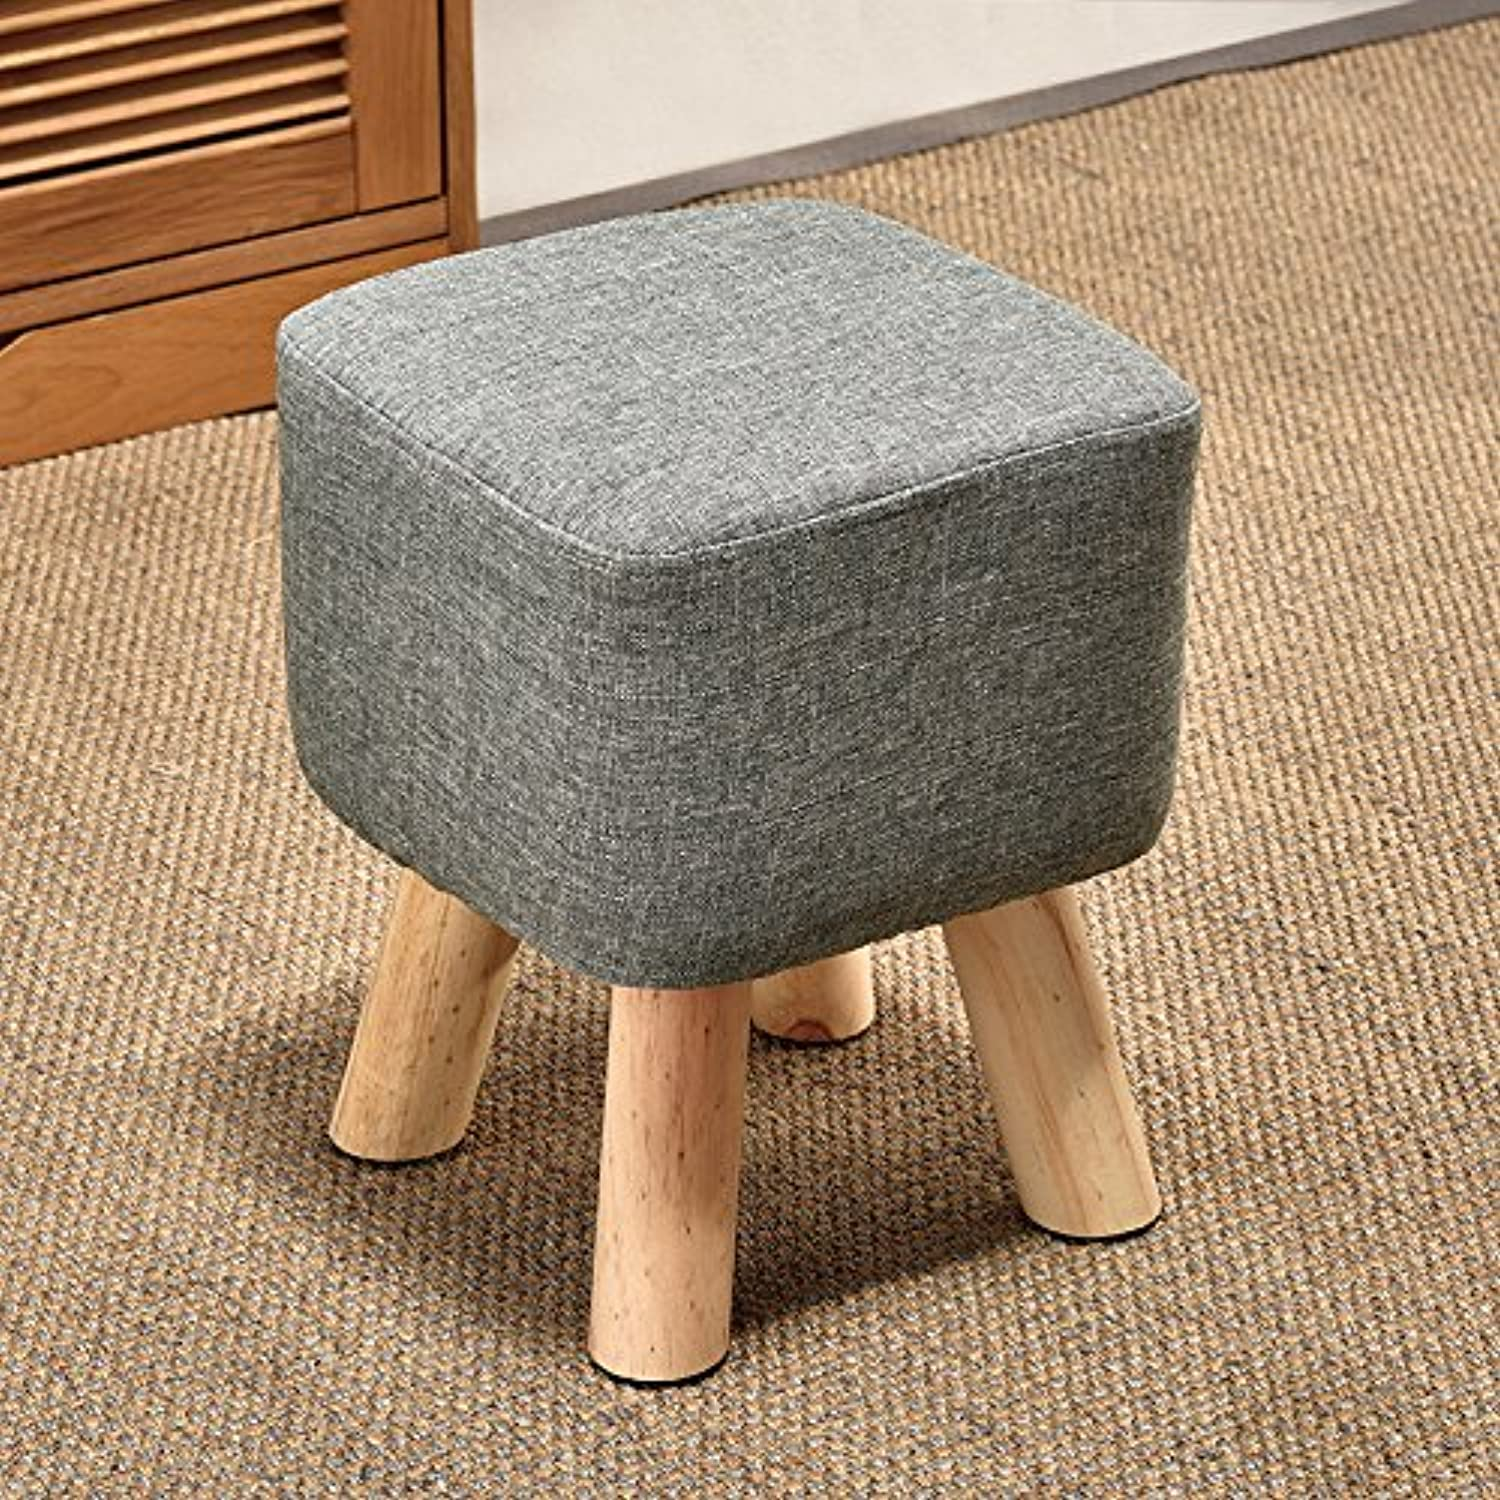 Dana Carrie The High stool Wooden stool Creative Living in Other shoes is Stylish Cloth Sofas stools Benches, Green